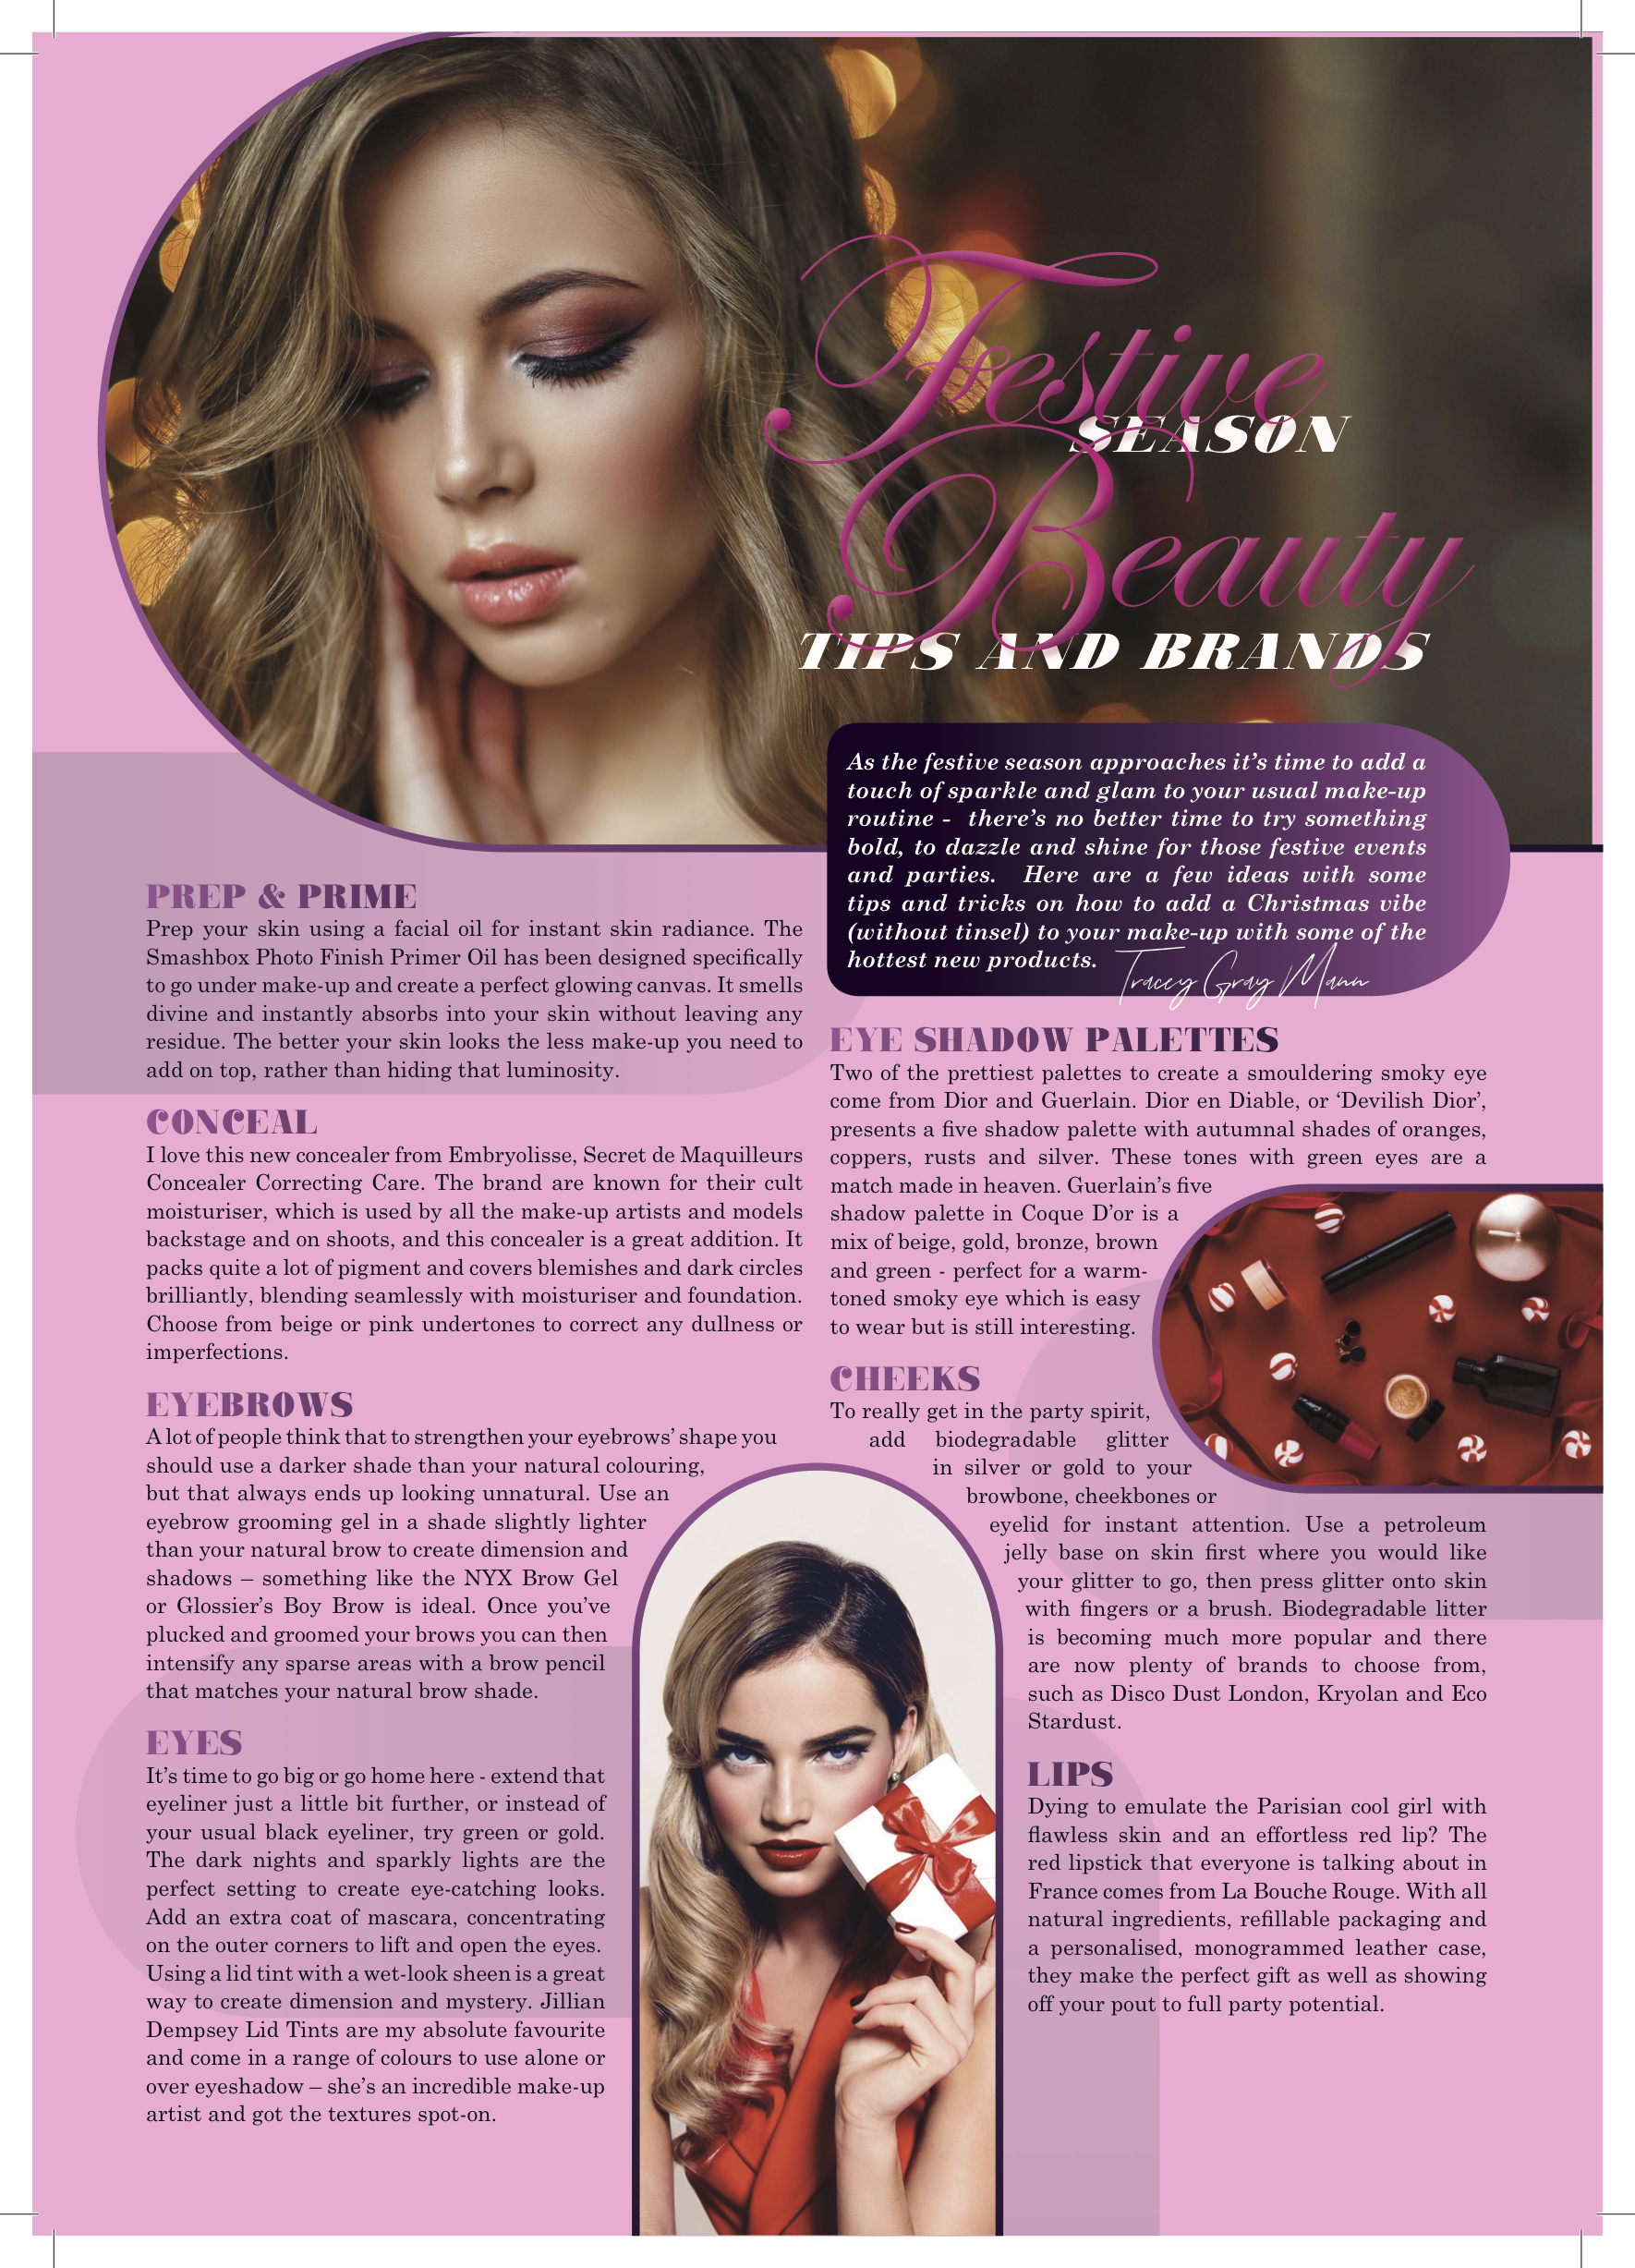 Festive Season Beauty Tips And Brands 2018 By Tracey Gray Mann Tracey Gray Mann